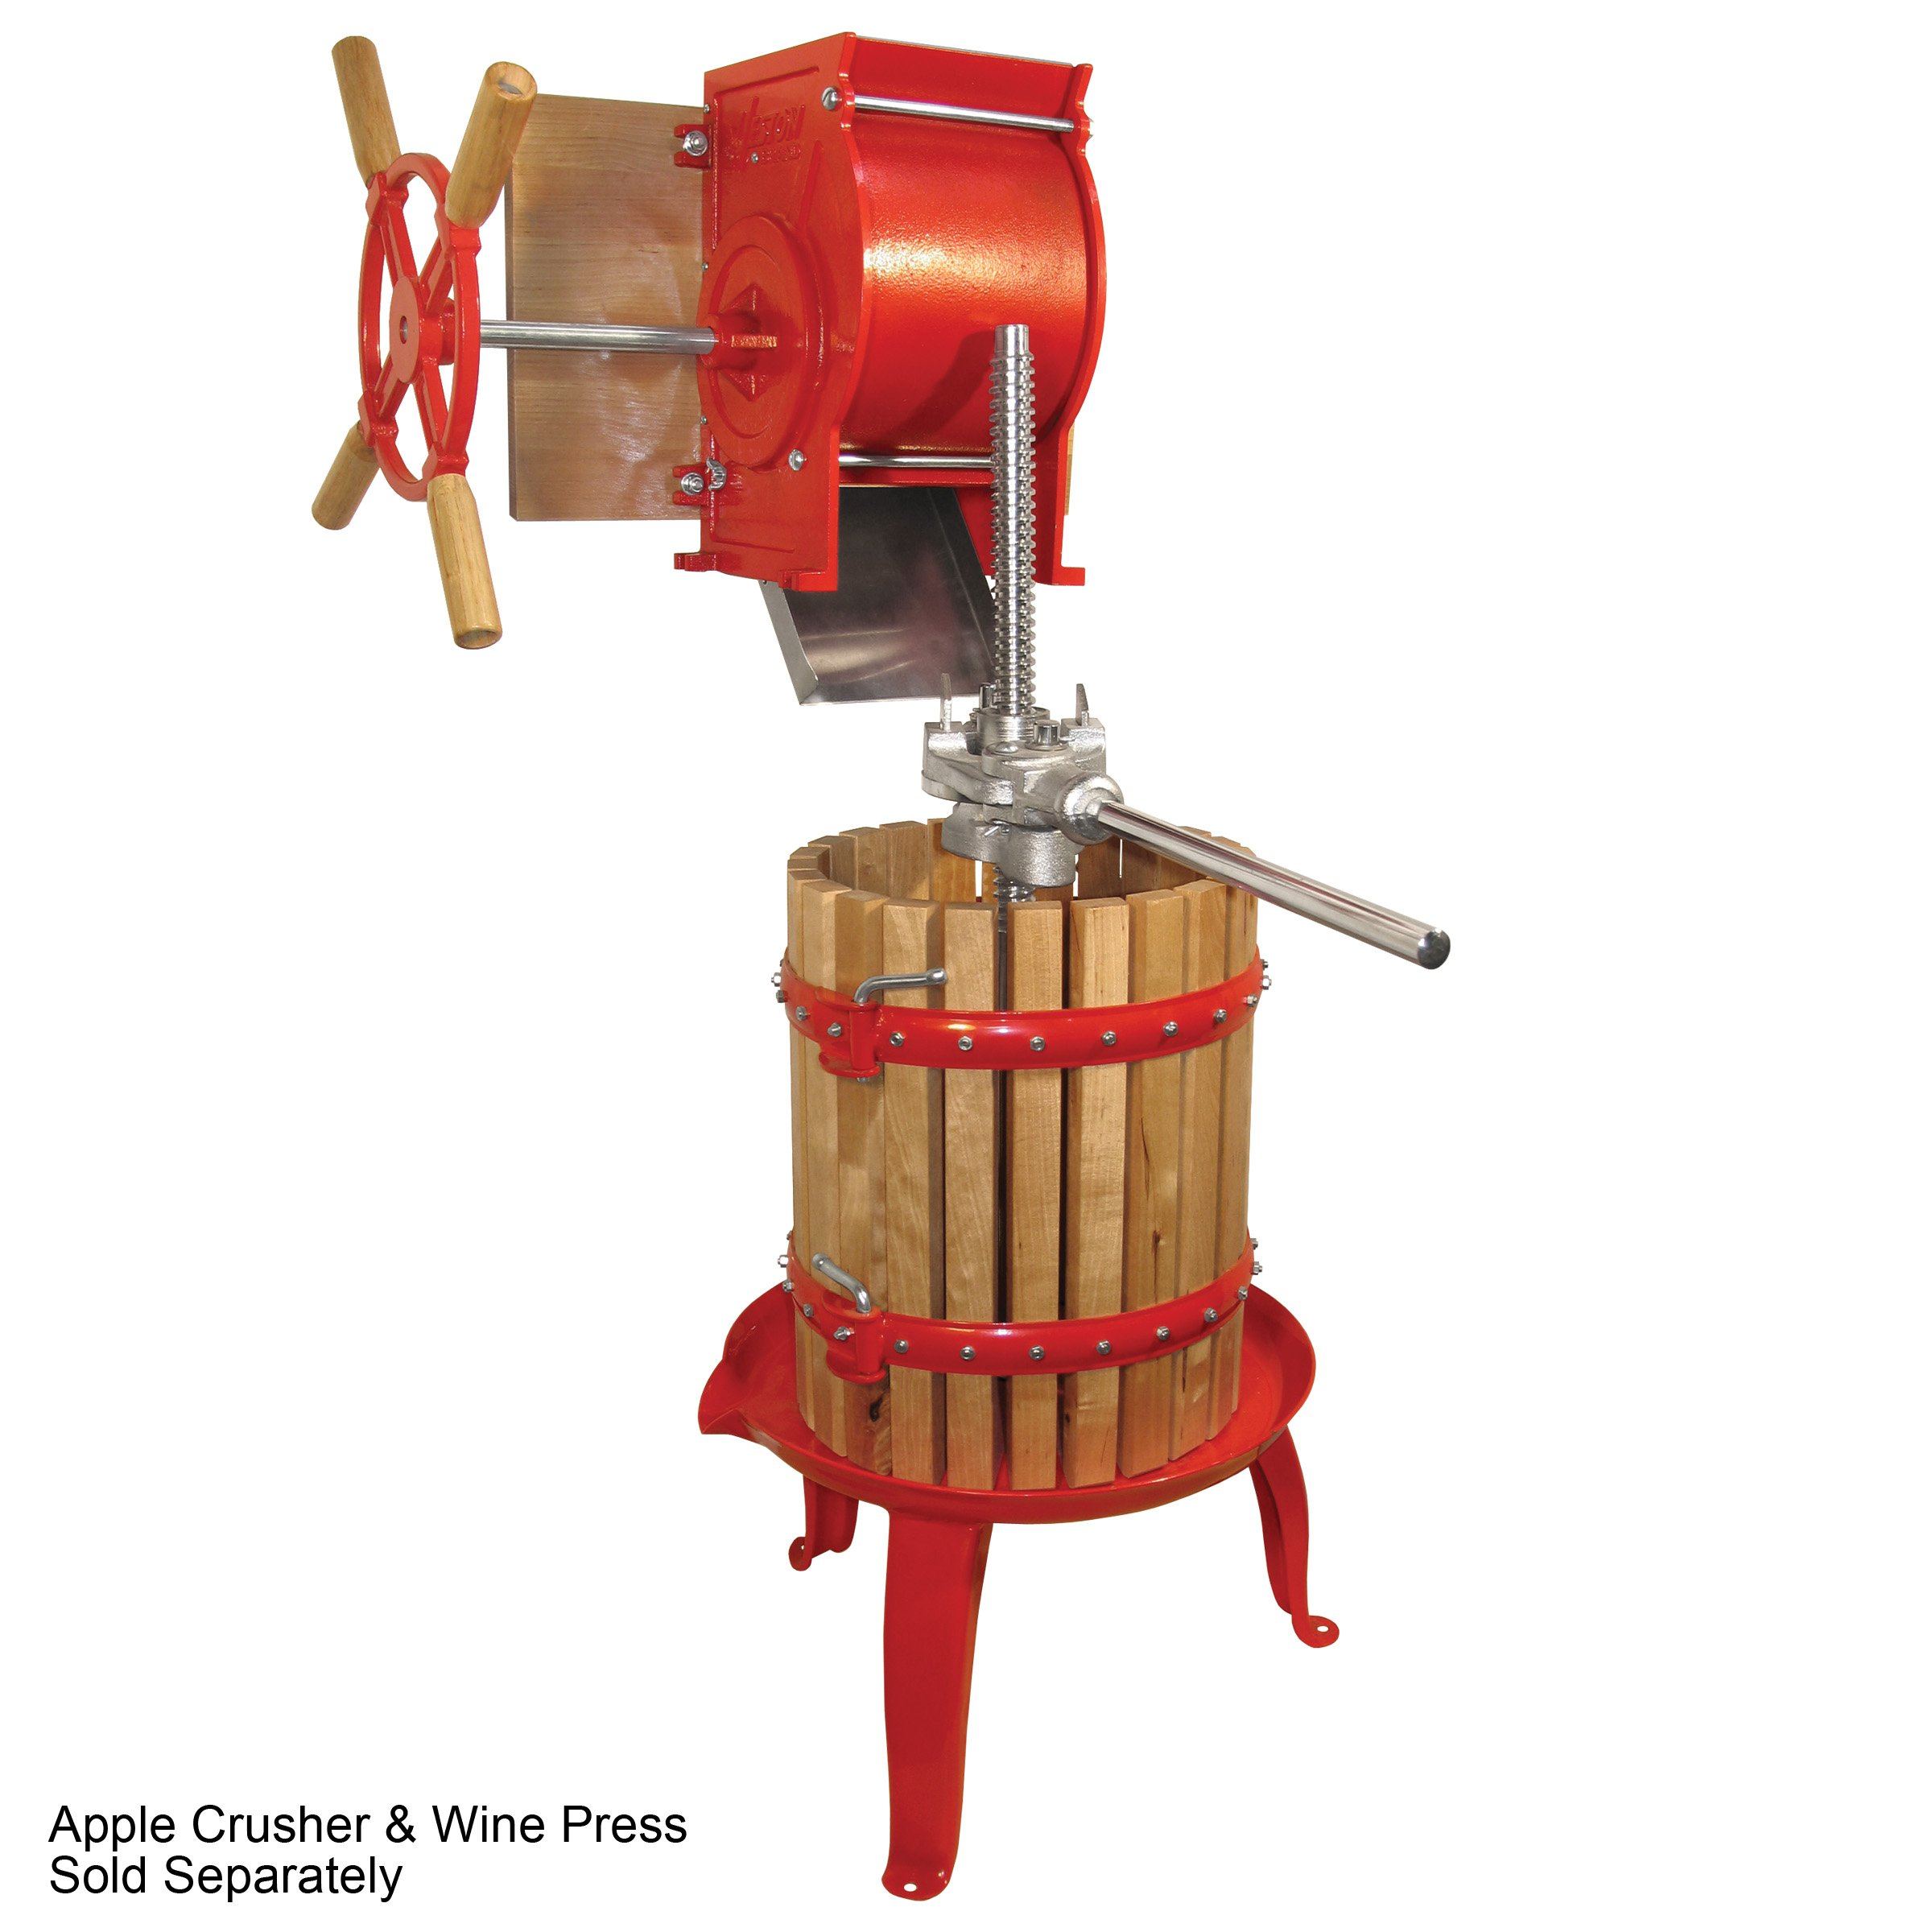 Weston Fruit and Wine Press (05-0101), 16 Quart Capacity with Pressing Blocks, Heavy Duty by Weston (Image #3)